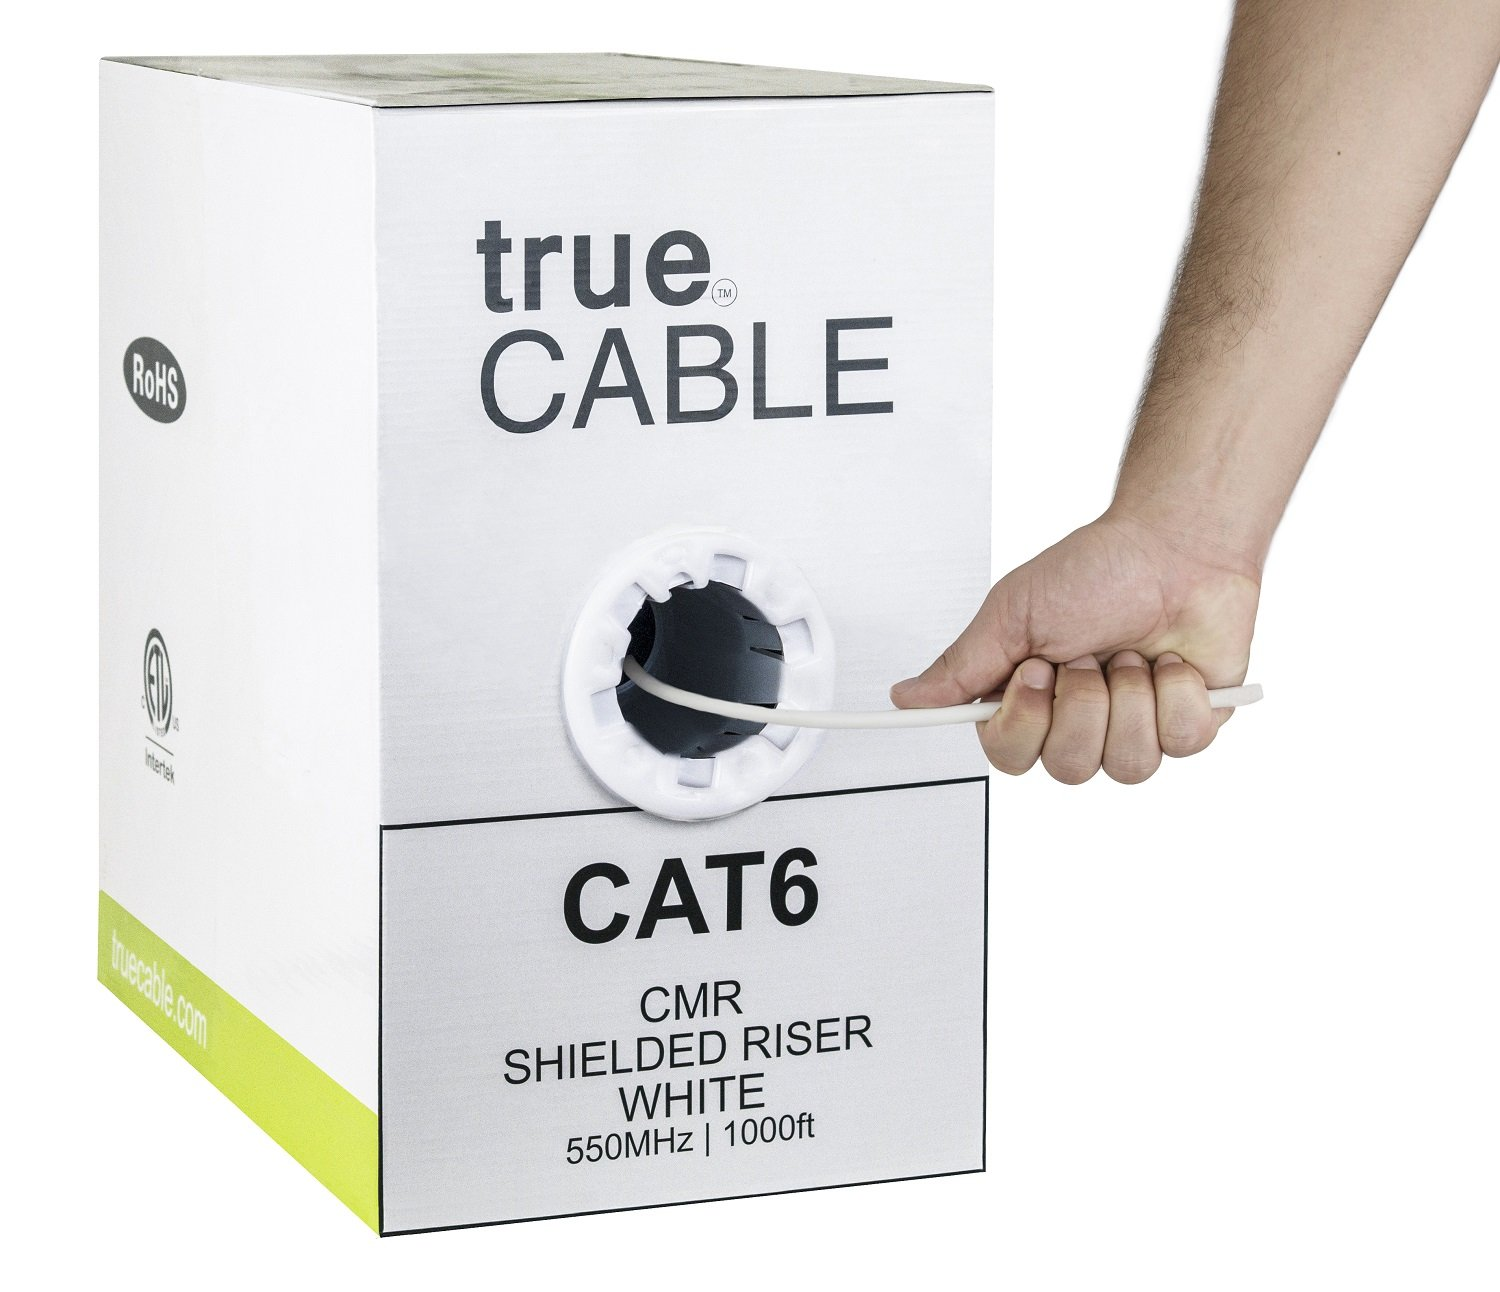 Cat6 Shielded Riser (CMR), 1000ft, White, Solid Bare Copper Bulk Ethernet Cable, 550MHz, ETL Listed, 23AWG, Overall Foil Shield (FTP), trueCABLE